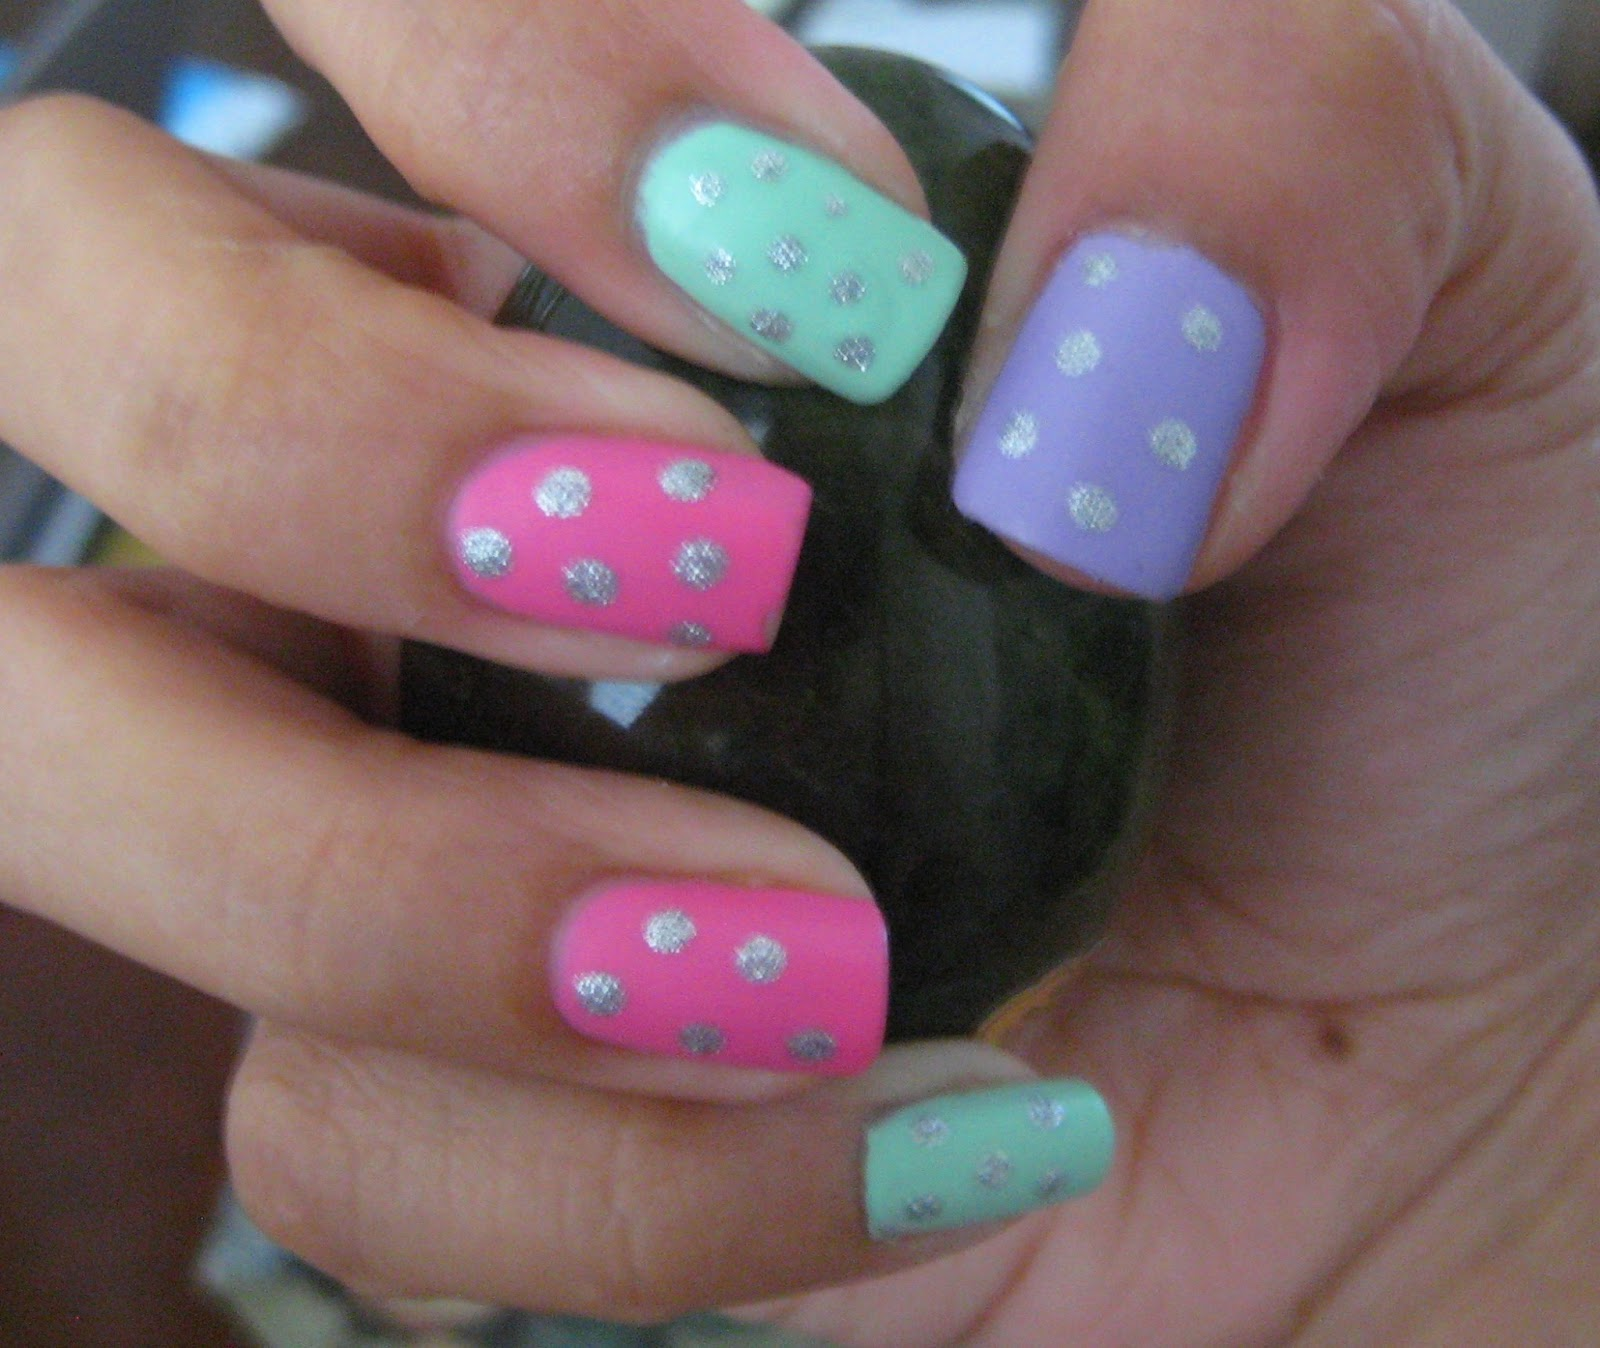 5 Finger Discount: Cute Holiday Nail Art on a budget: Easter Egg ...